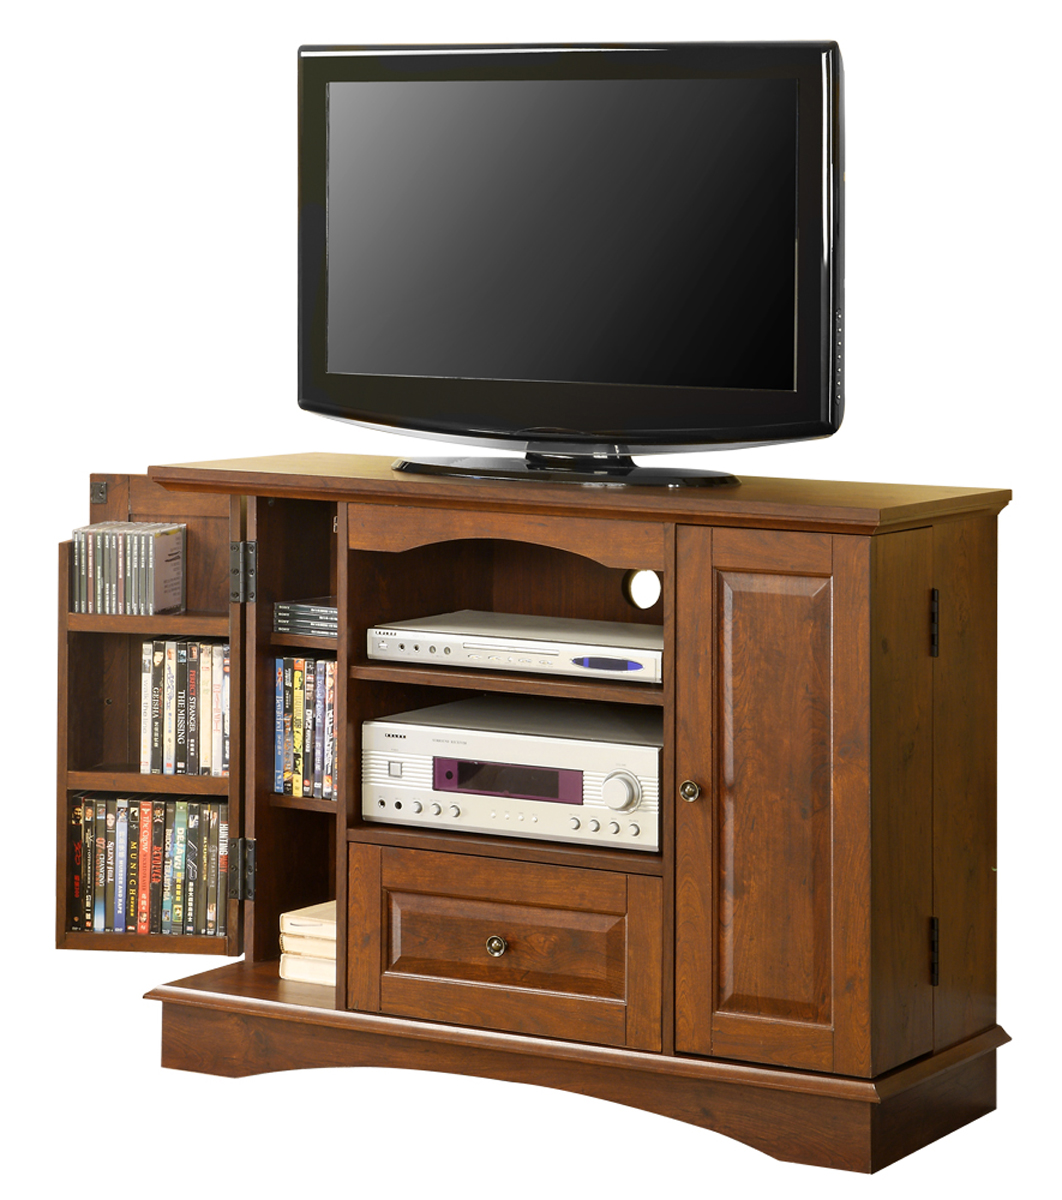 Inch wood tv stand with media storage in stands